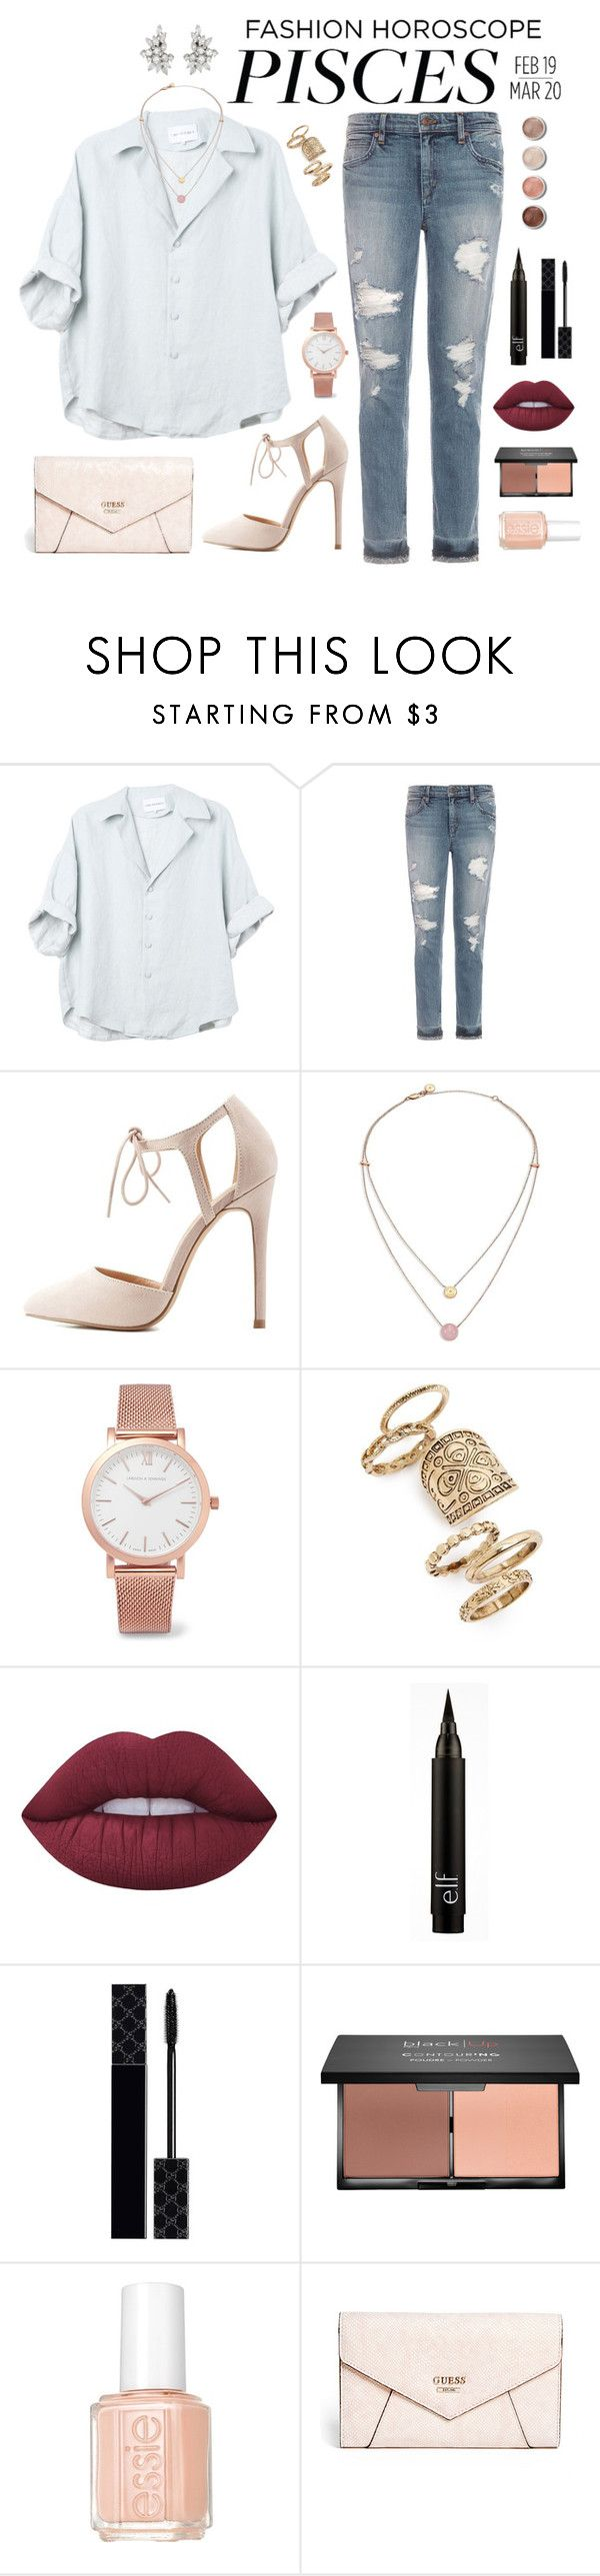 """Pisces"" by kira-mckee on Polyvore featuring Joe's Jeans, Charlotte Russe, Michael Kors, Larsson & Jennings, Topshop, Terre Mère, Lime Crime, Gucci, Essie and GUESS"